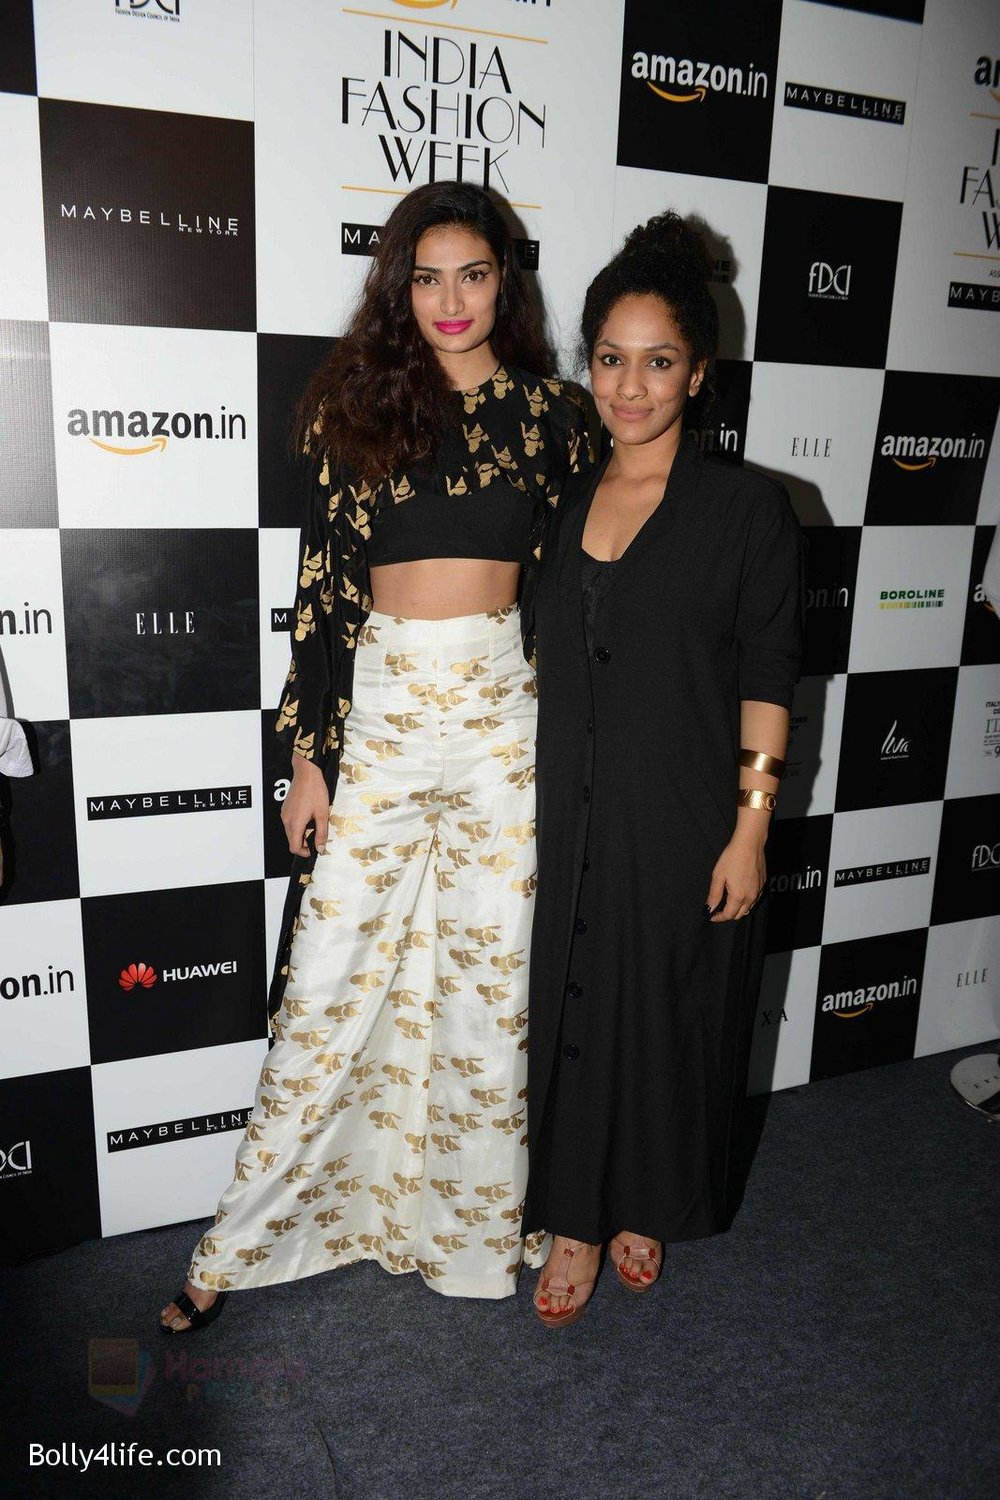 Athiya-Shetty-walks-for-Masaba-at-Amazon-India-Fashion-Week-on-15th-Oct-2016-54.jpg